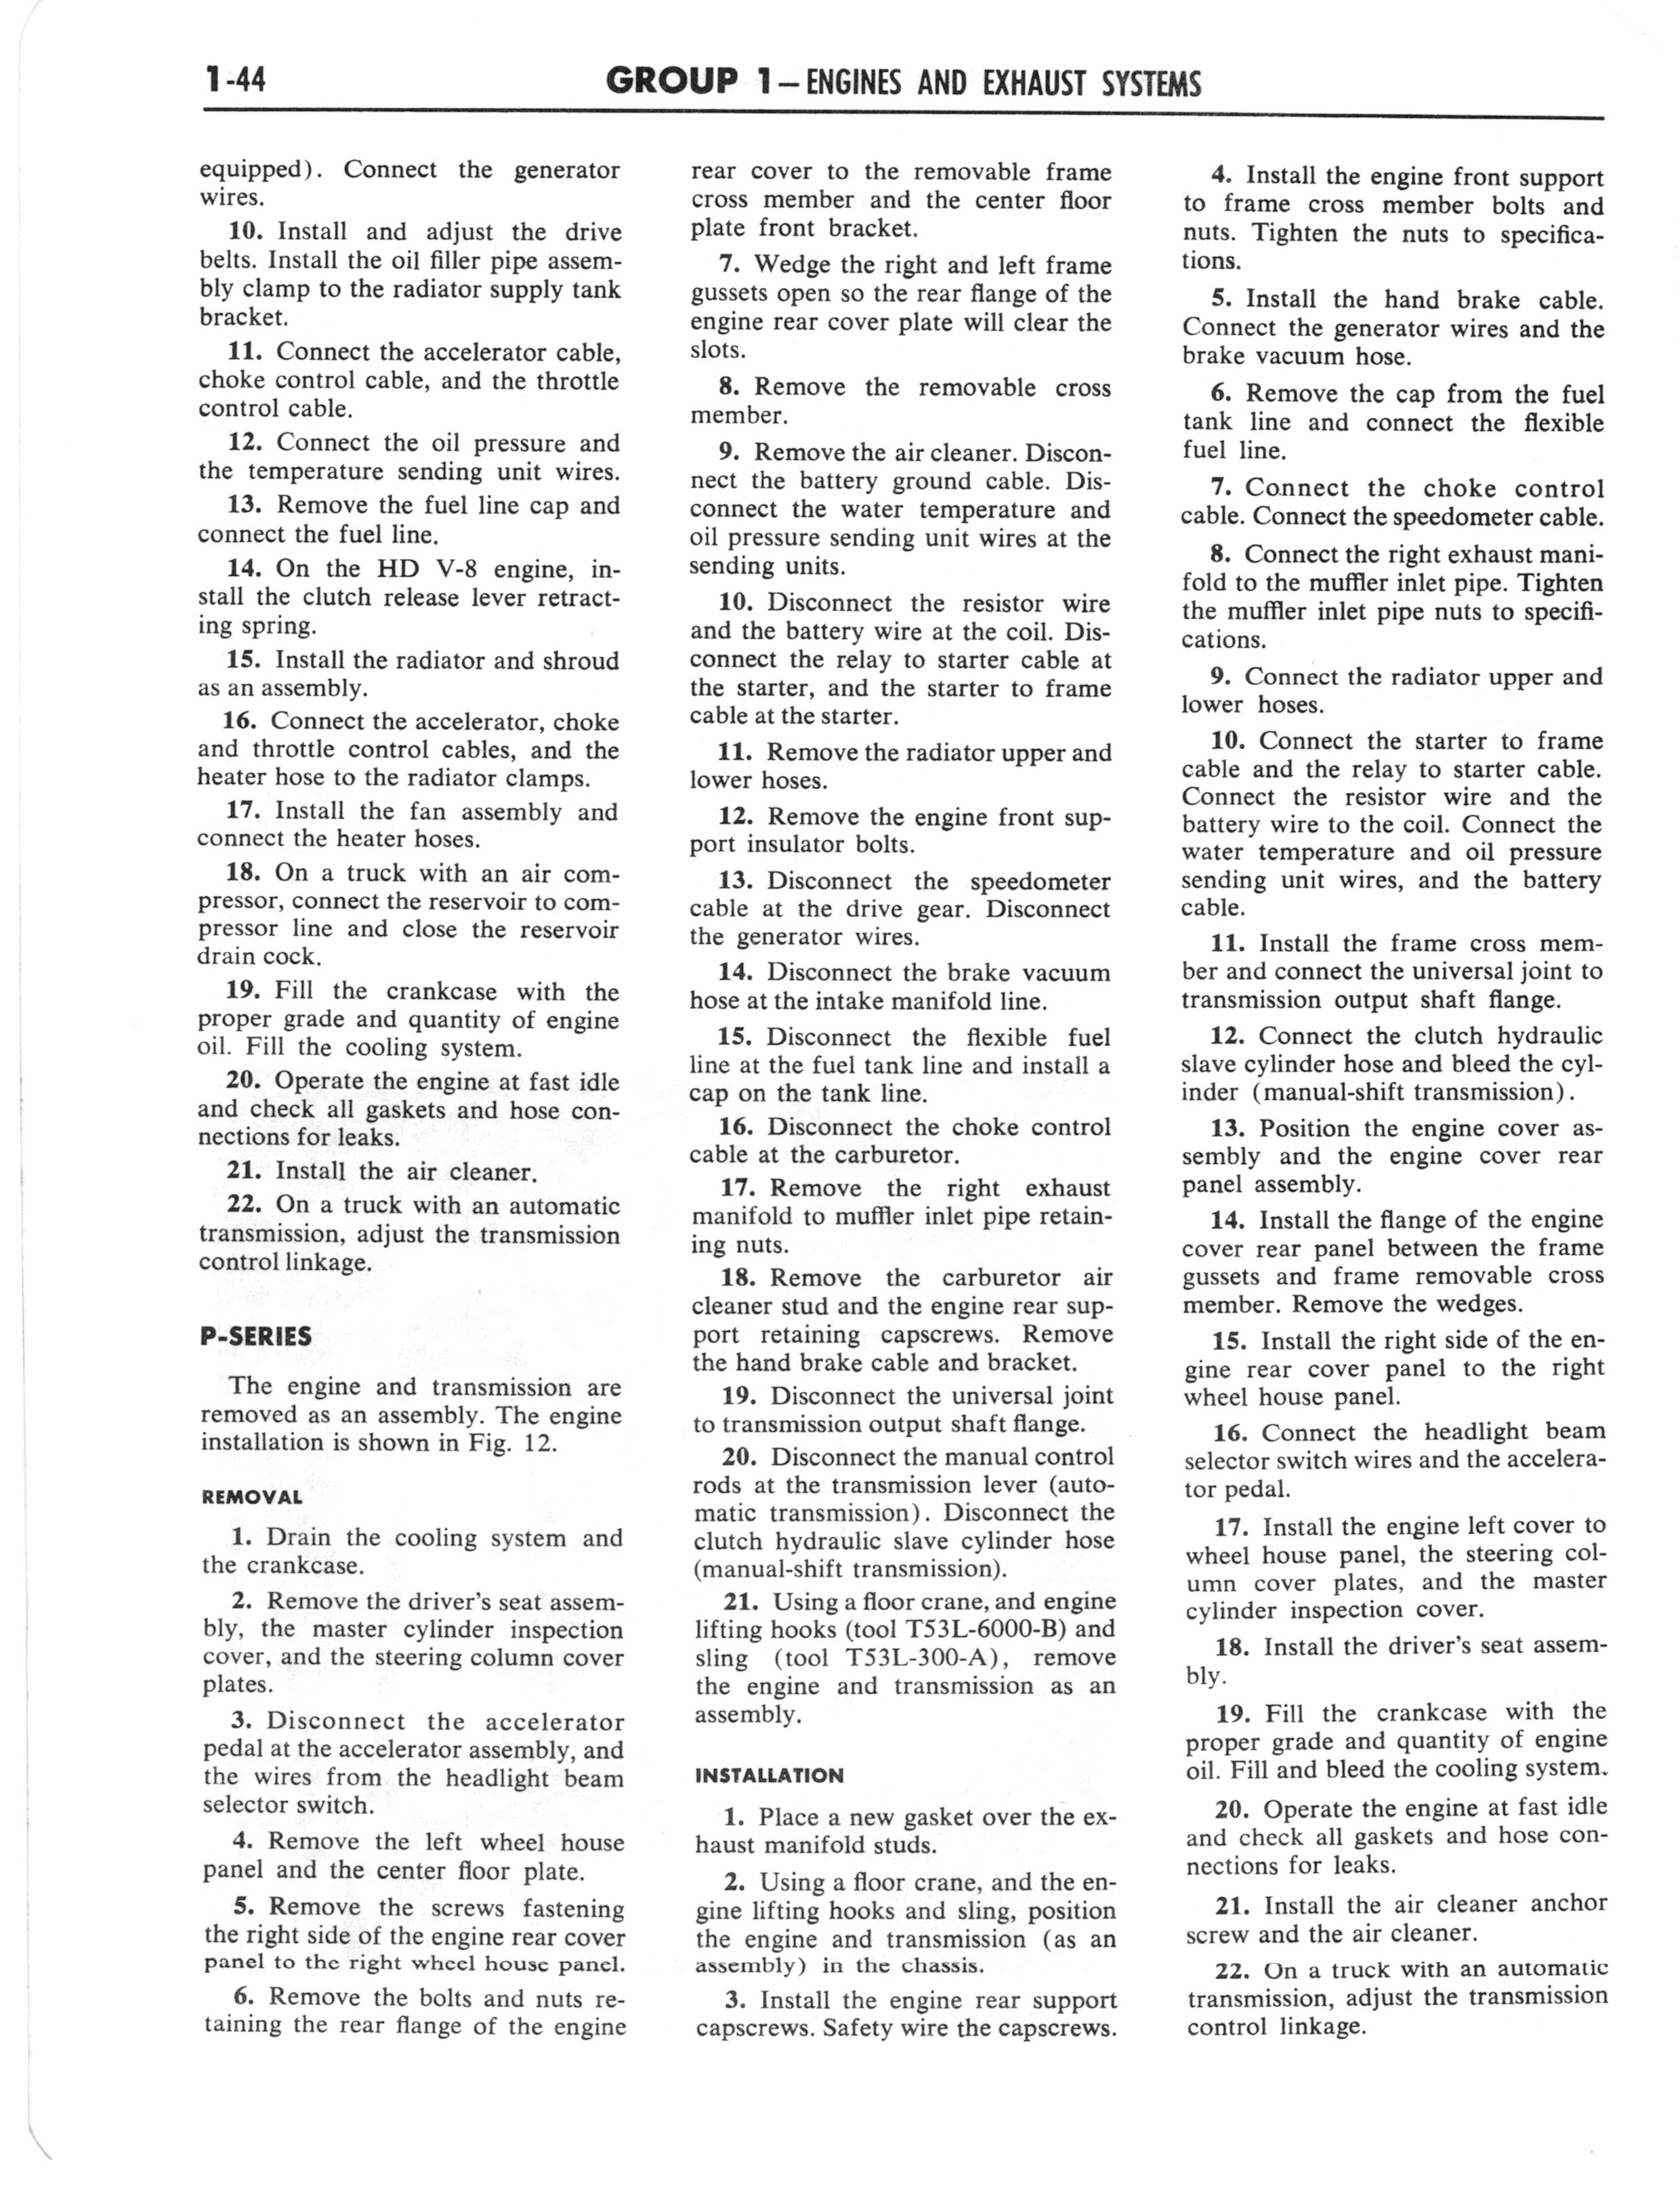 1960 Ford and Mercury Truck Shop Manual page 53 of 641